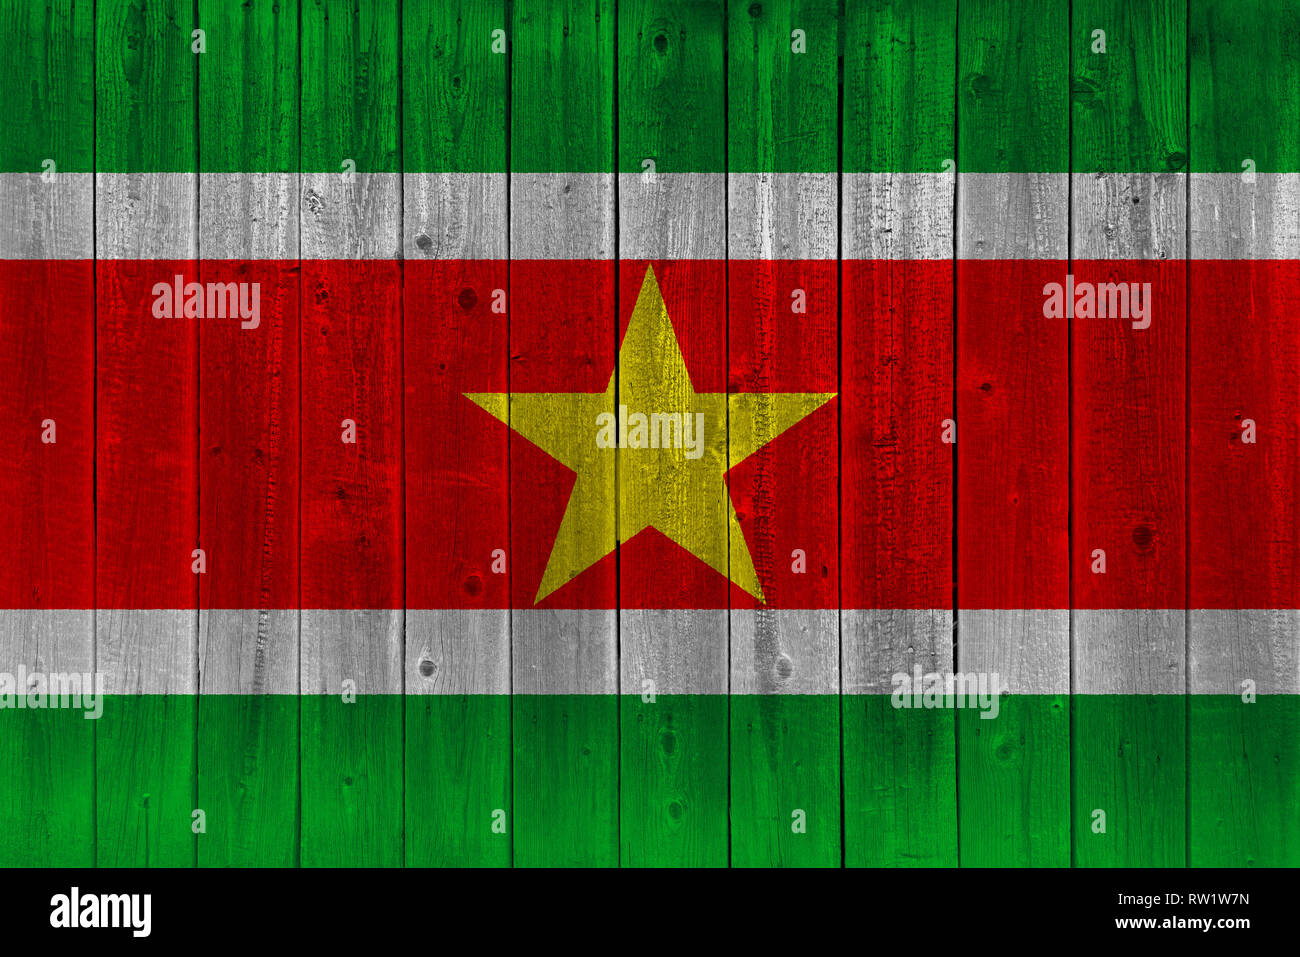 Suriname flag painted on old wood plank. Patriotic background. National flag of Suriname - Stock Image